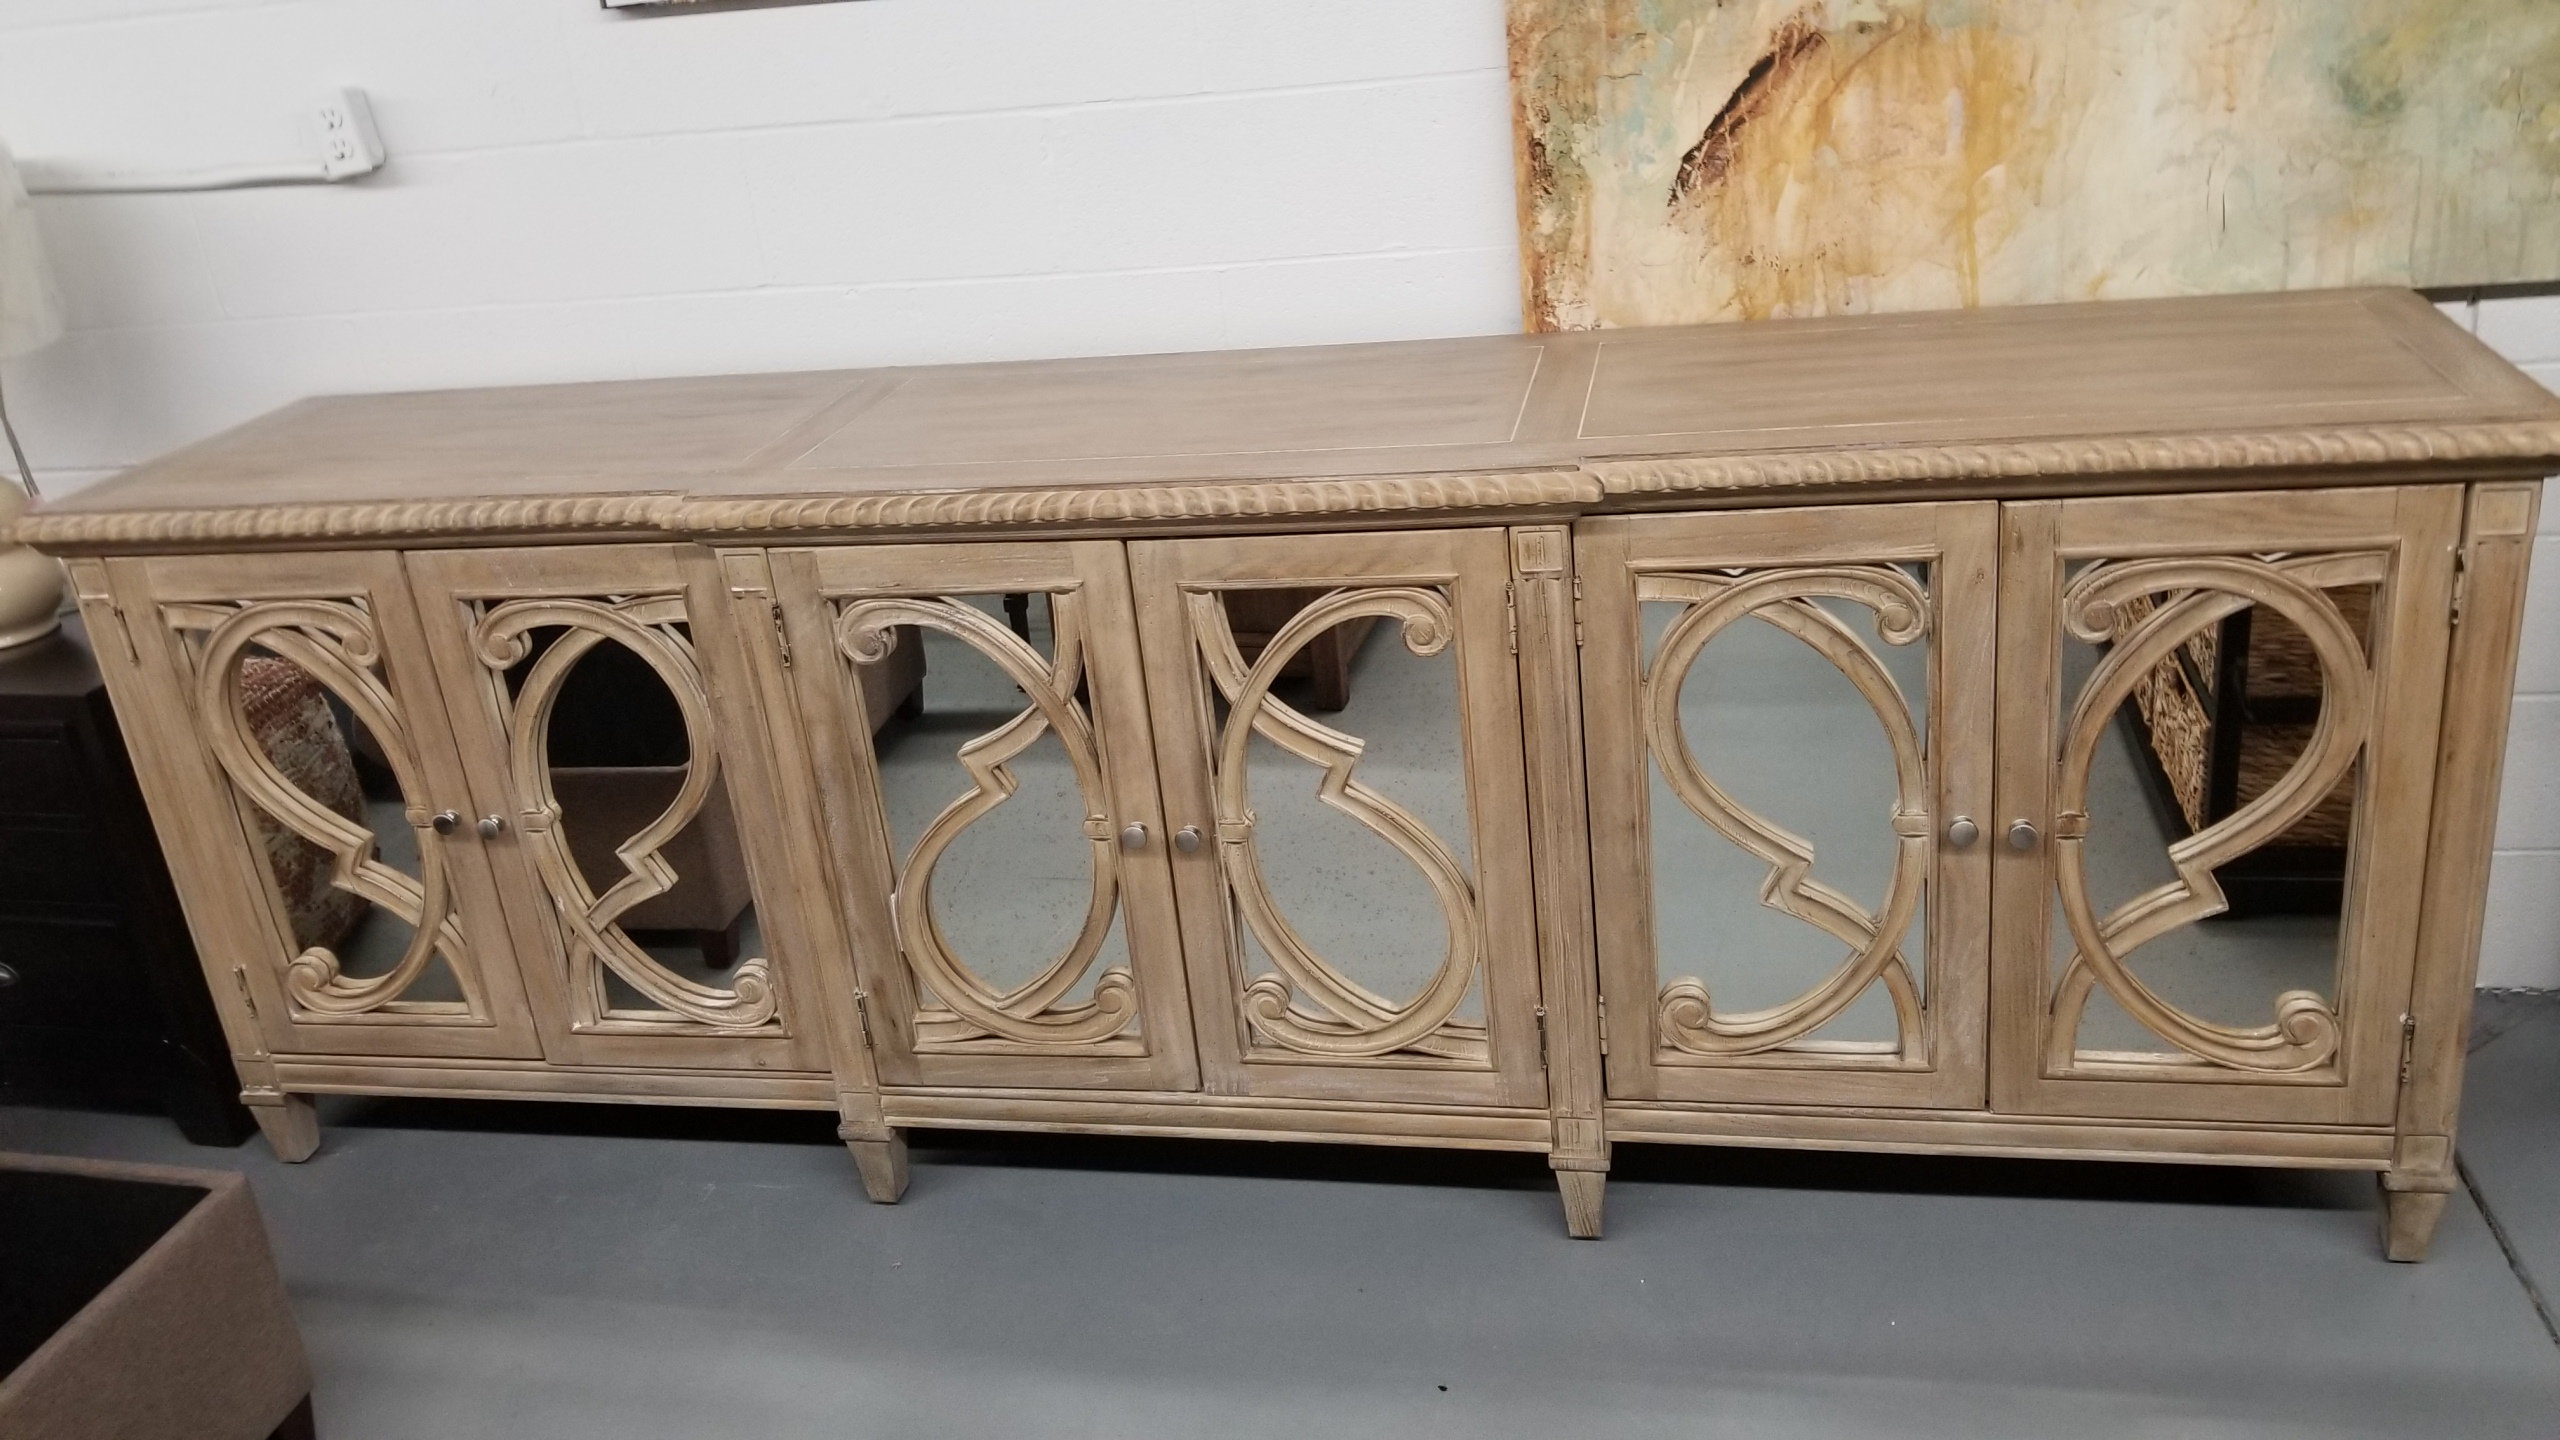 Solana Sideboardhooker Furniture | Sjbhomedecor Throughout Solana Sideboards (View 26 of 30)